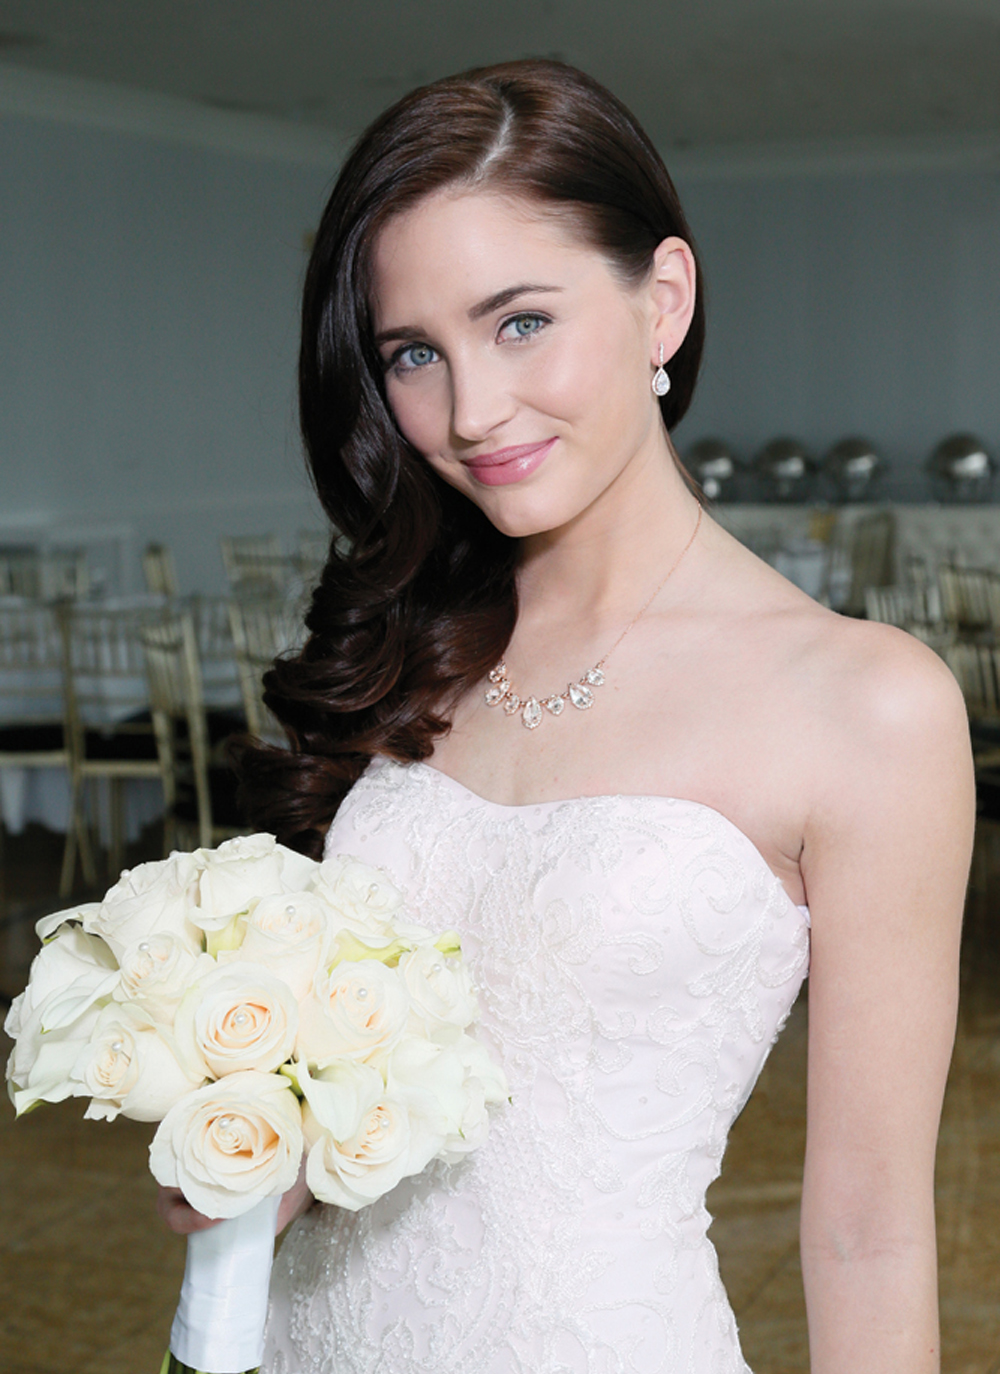 Hair & Makeup: The Bridal Suite NY, Gown: Oleg Cassini CWG737